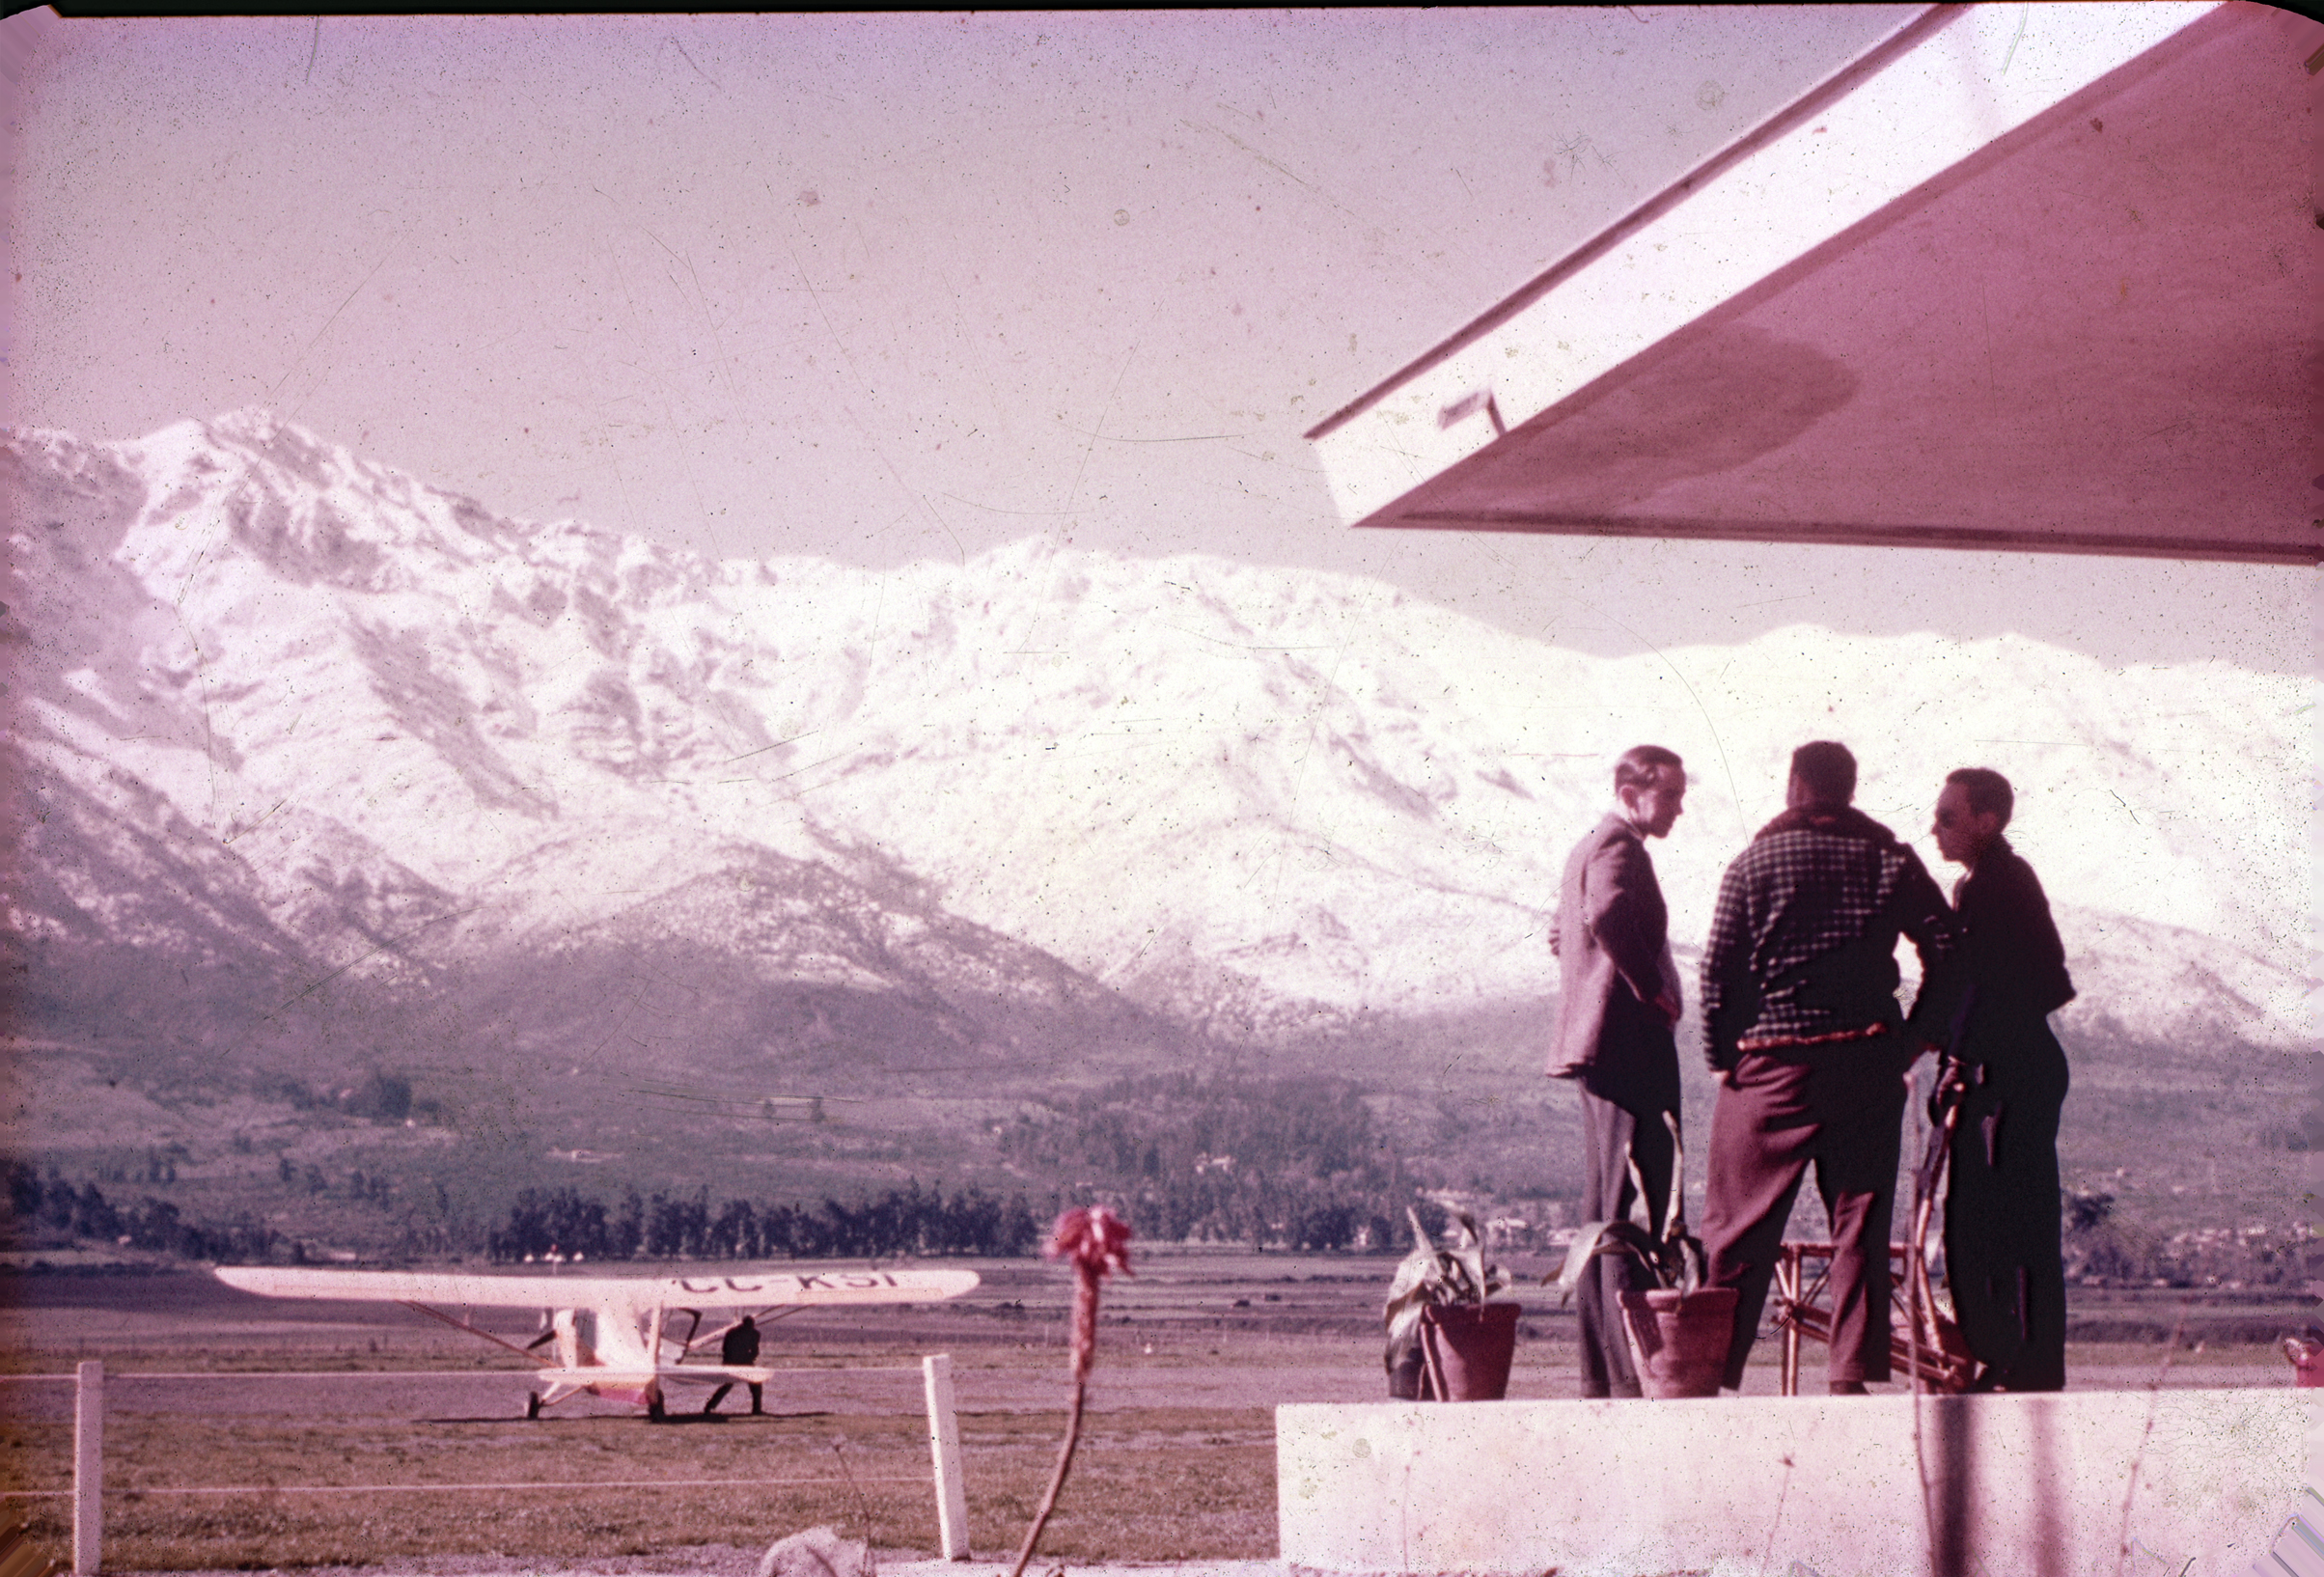 Enterreno - Fotos históricas de chile - fotos antiguas de Chile - Aeródromo de Tobalaba 60's